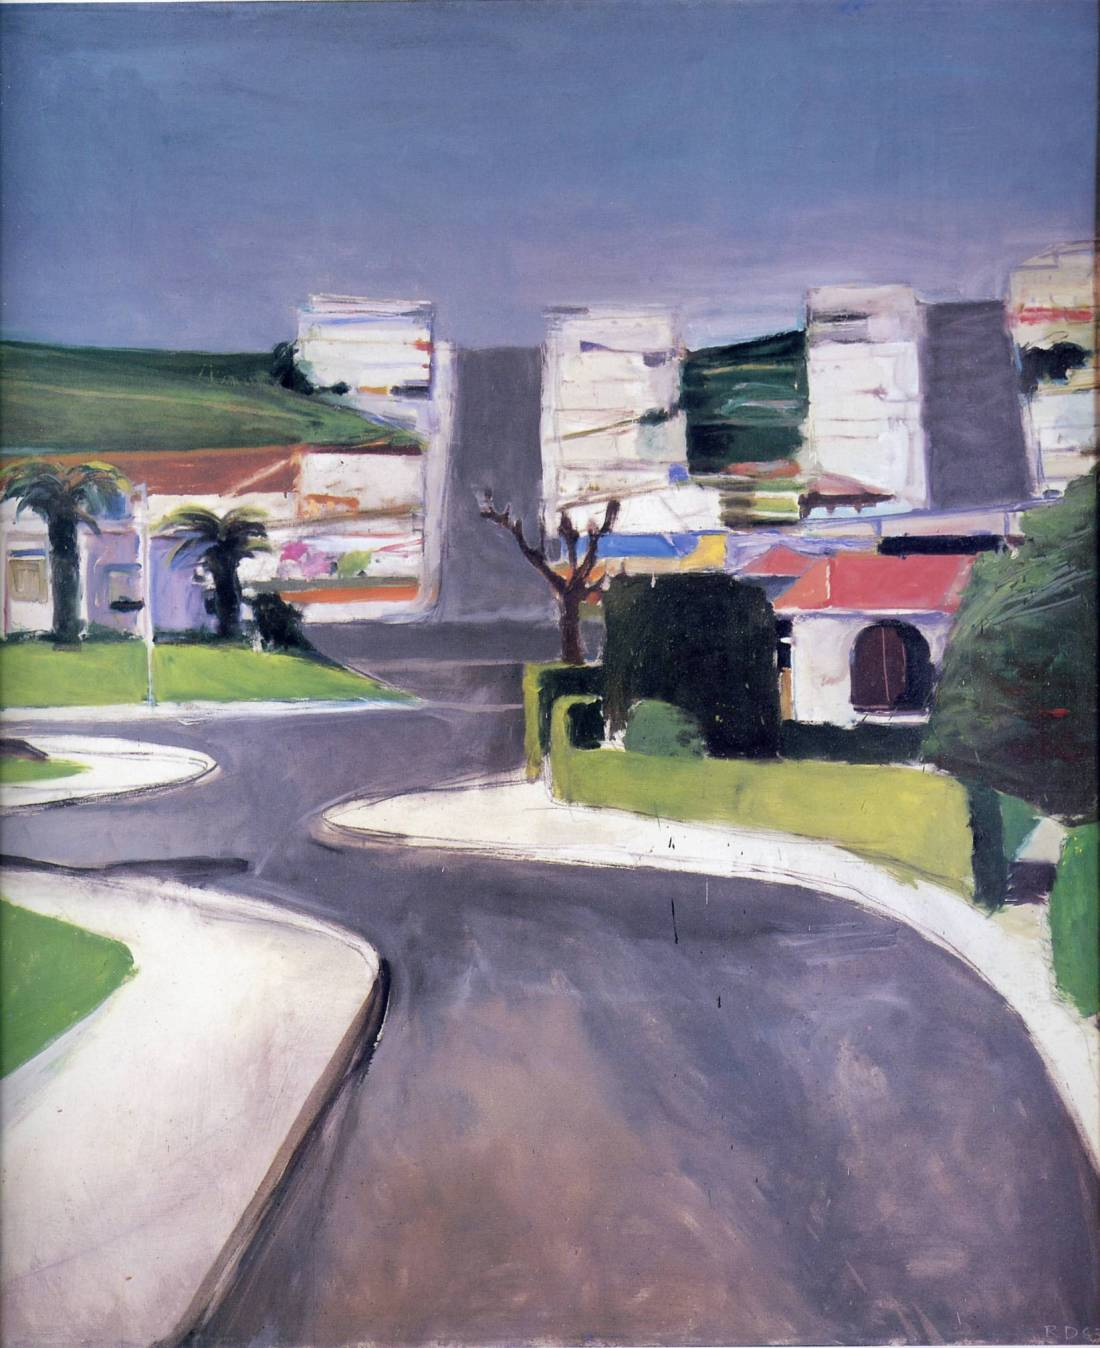 Richard Diebenkorn, Ingleside, 1963. Collection of the Grand Rapids (Mich.) Art Museum.